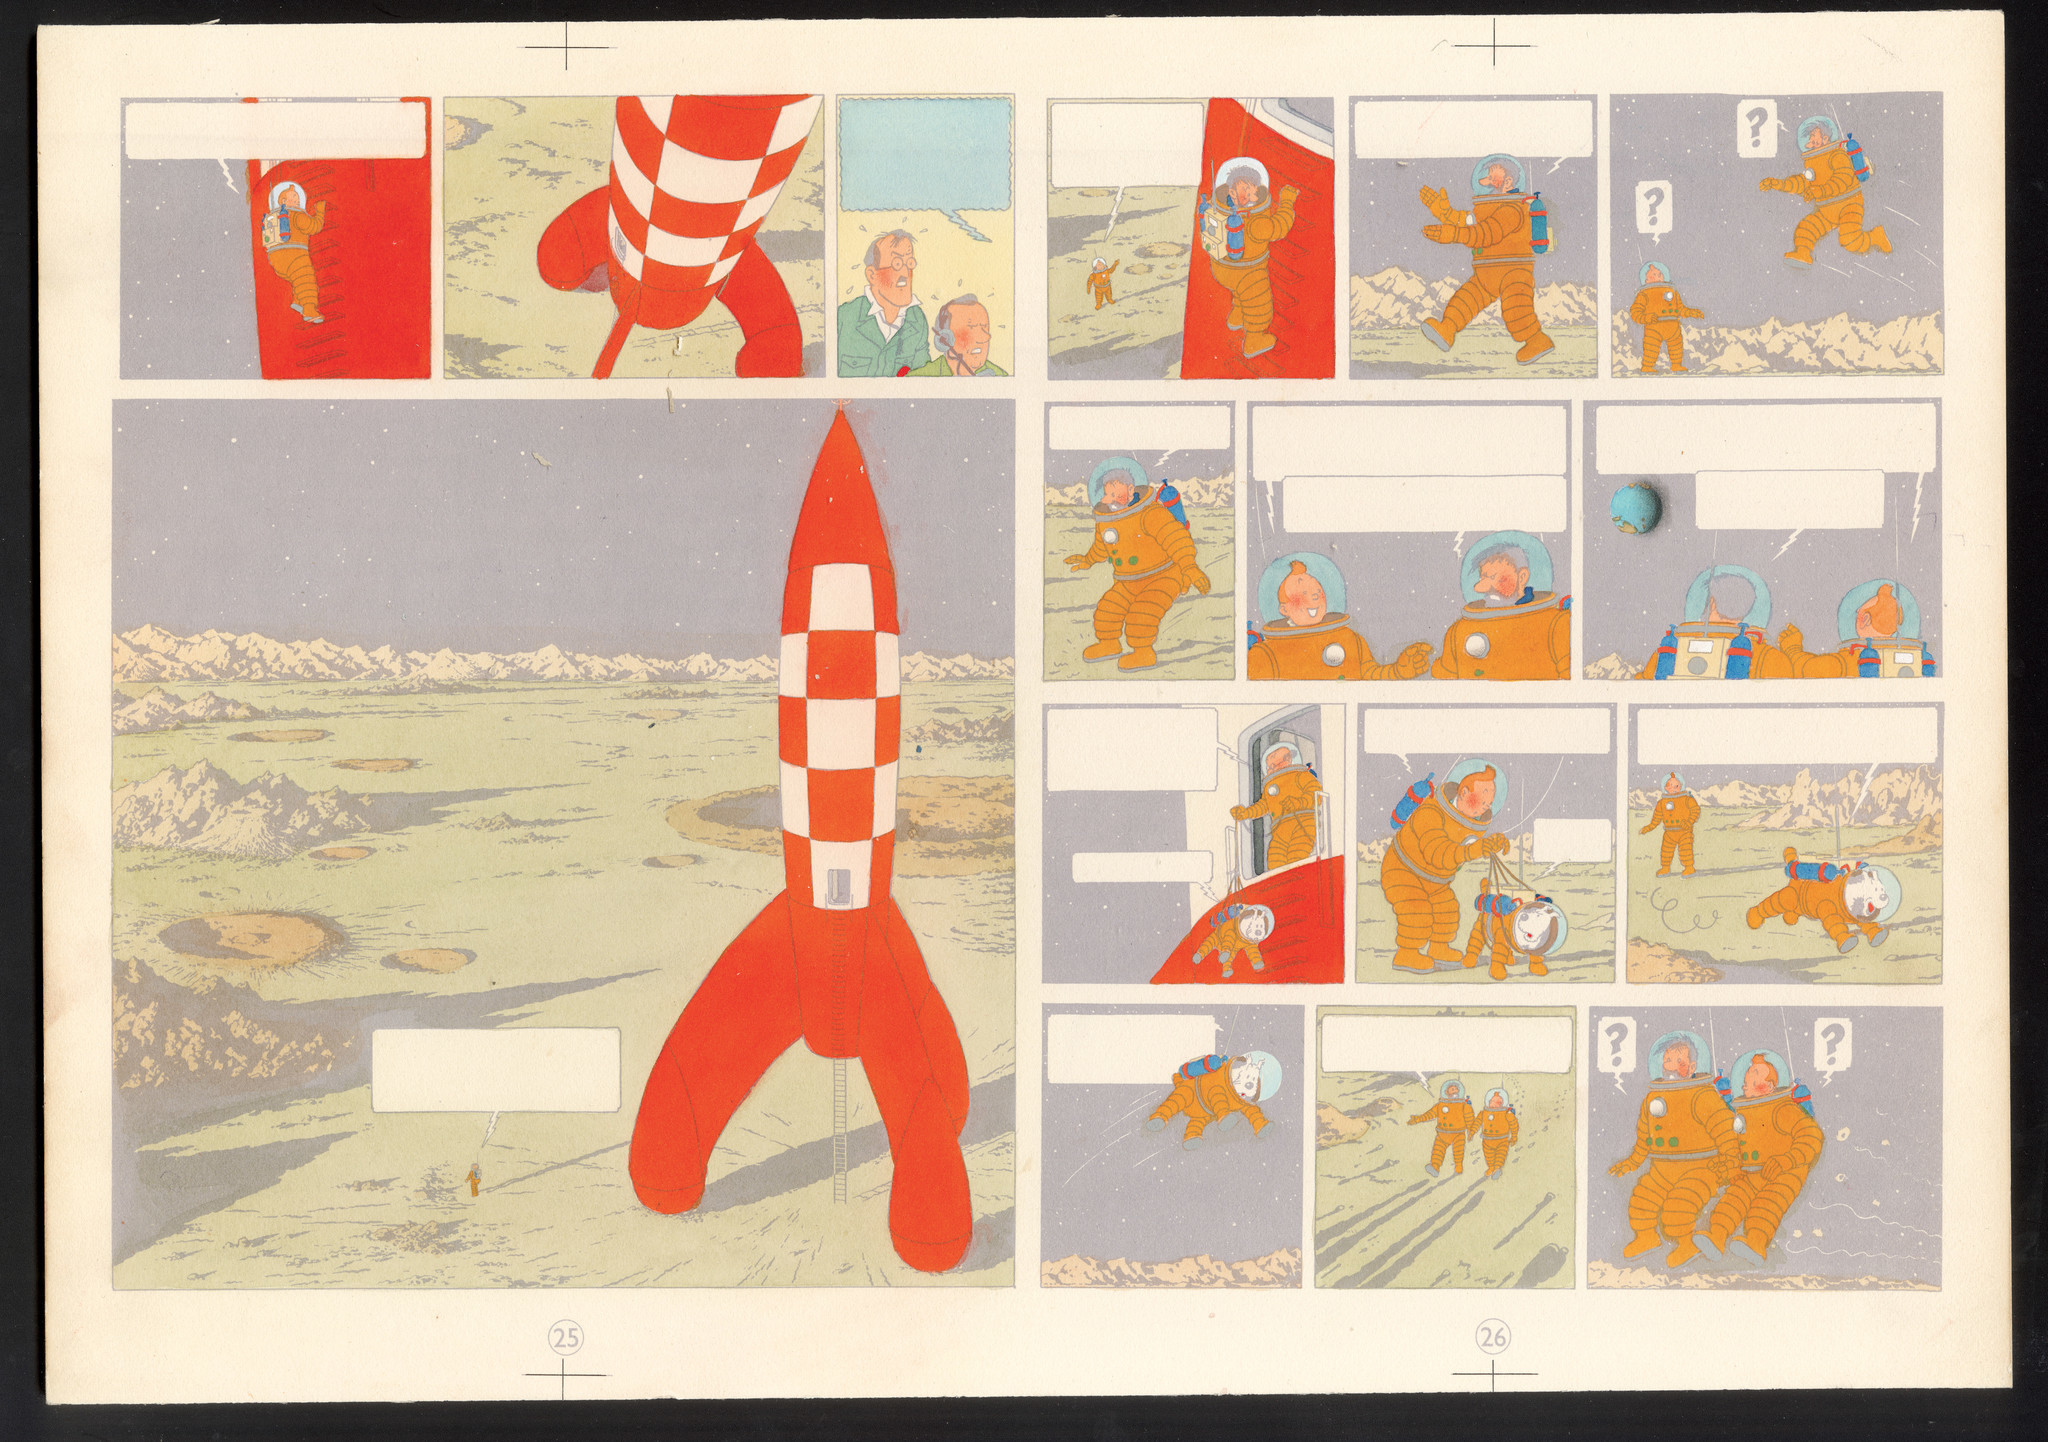 """The Adventures of Tintin: We Walked on the Moon,"" 1954, blue coloring of plates 25 and 26, watercolor and gouache on printed proof, from the collection of Studios Herg."